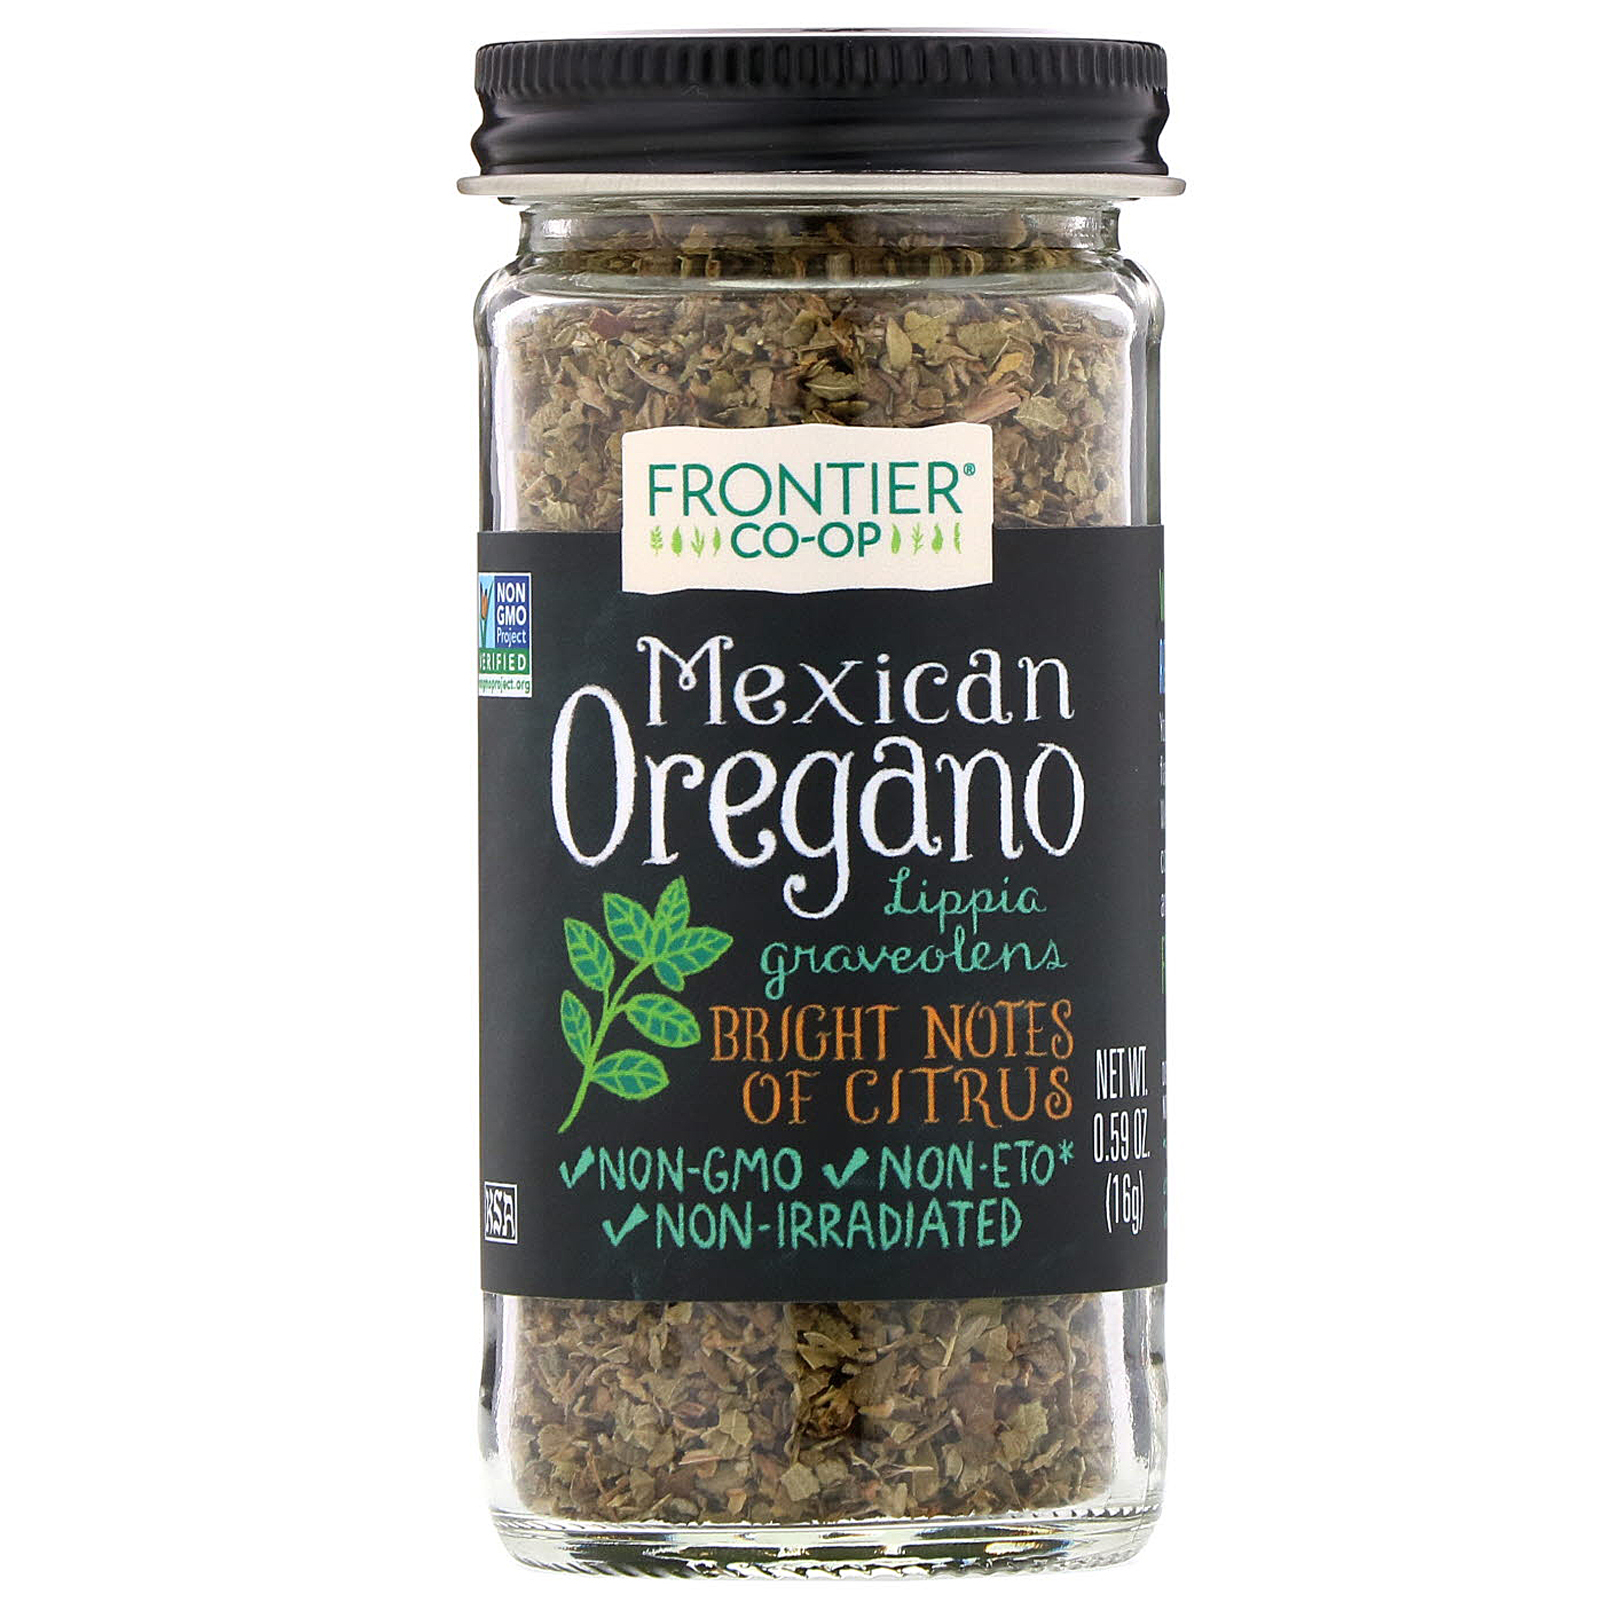 Frontier Natural Products Mexican Oregano 0.59 oz (16 g ...